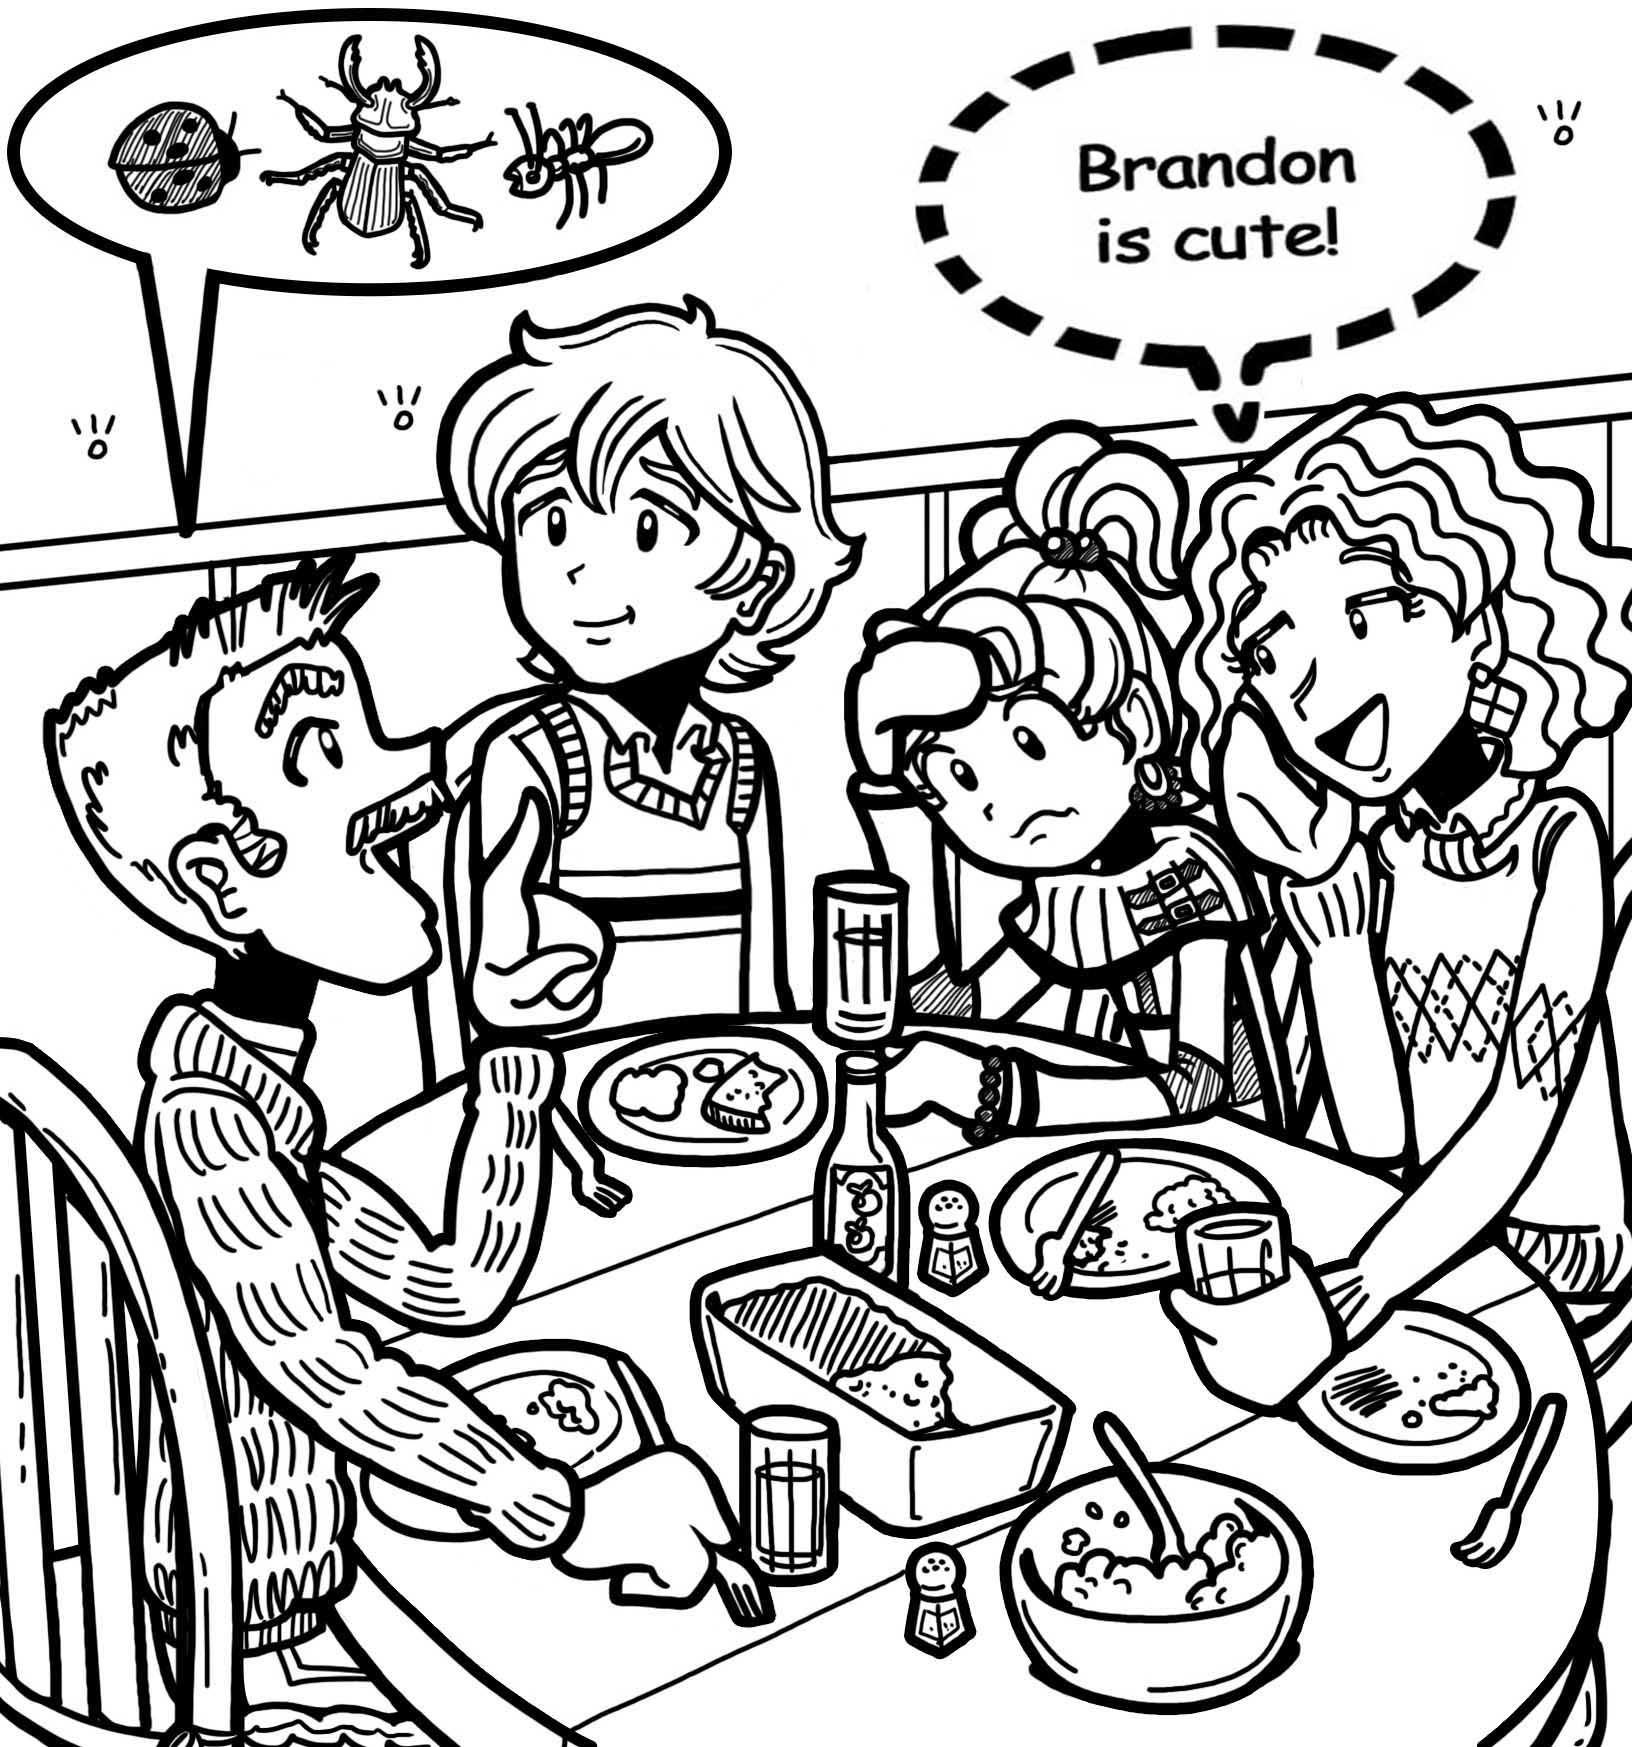 Image Brandon And Nikki S Family Jpg The Dork Diaries Wiki Dork Diaries Free Coloring Pages Coloring Pages